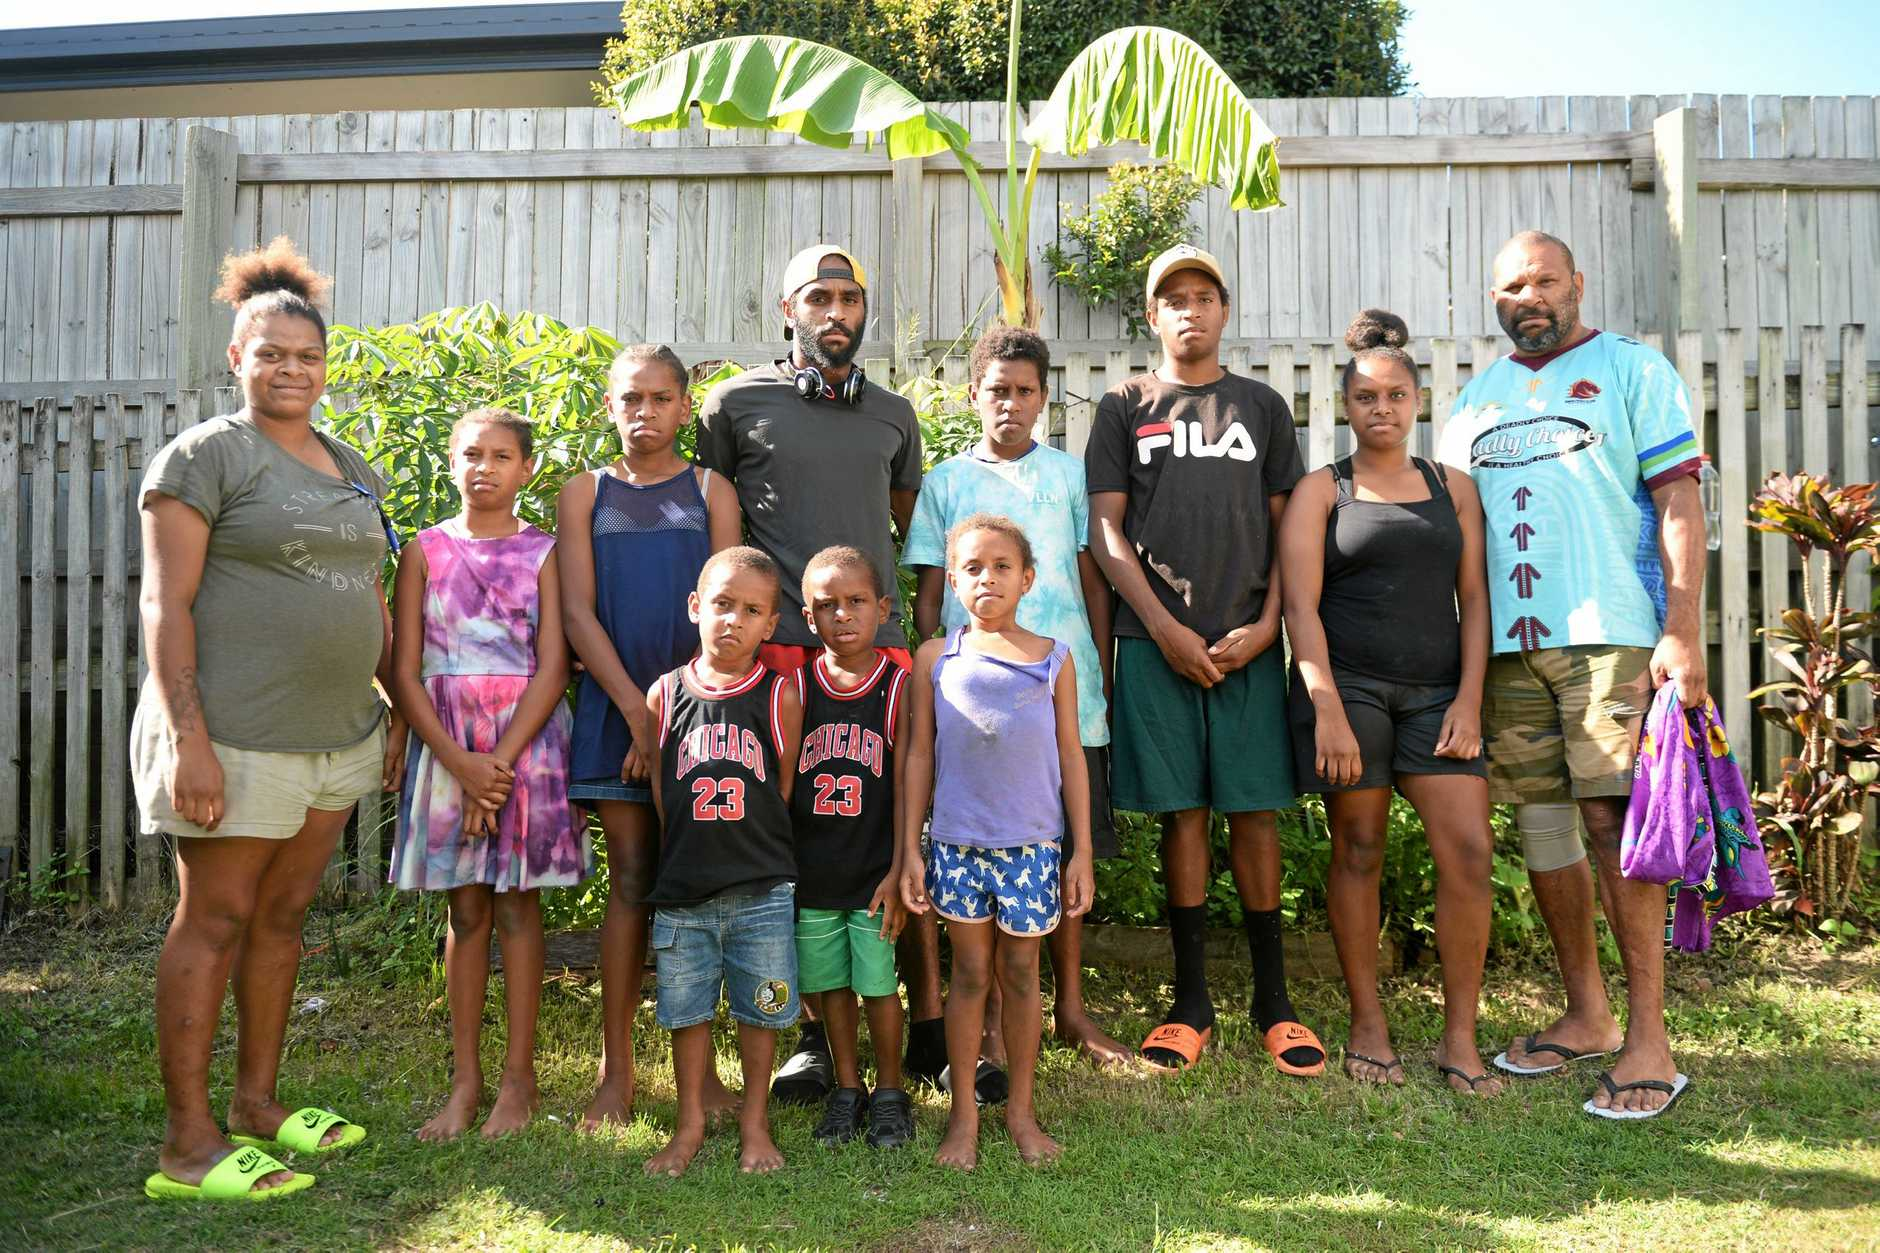 PAYING TRIBUTE: Natasha's children (L-R) Alintia Auda, Xzantia Ingui, Dawn Ingui, Darnelle Auda, Nargie Ingui, James Ingui, Chris Ingui, Horrice Ingui and Andella Ingui. Her fiance Lonnie Ingui is on the far right.